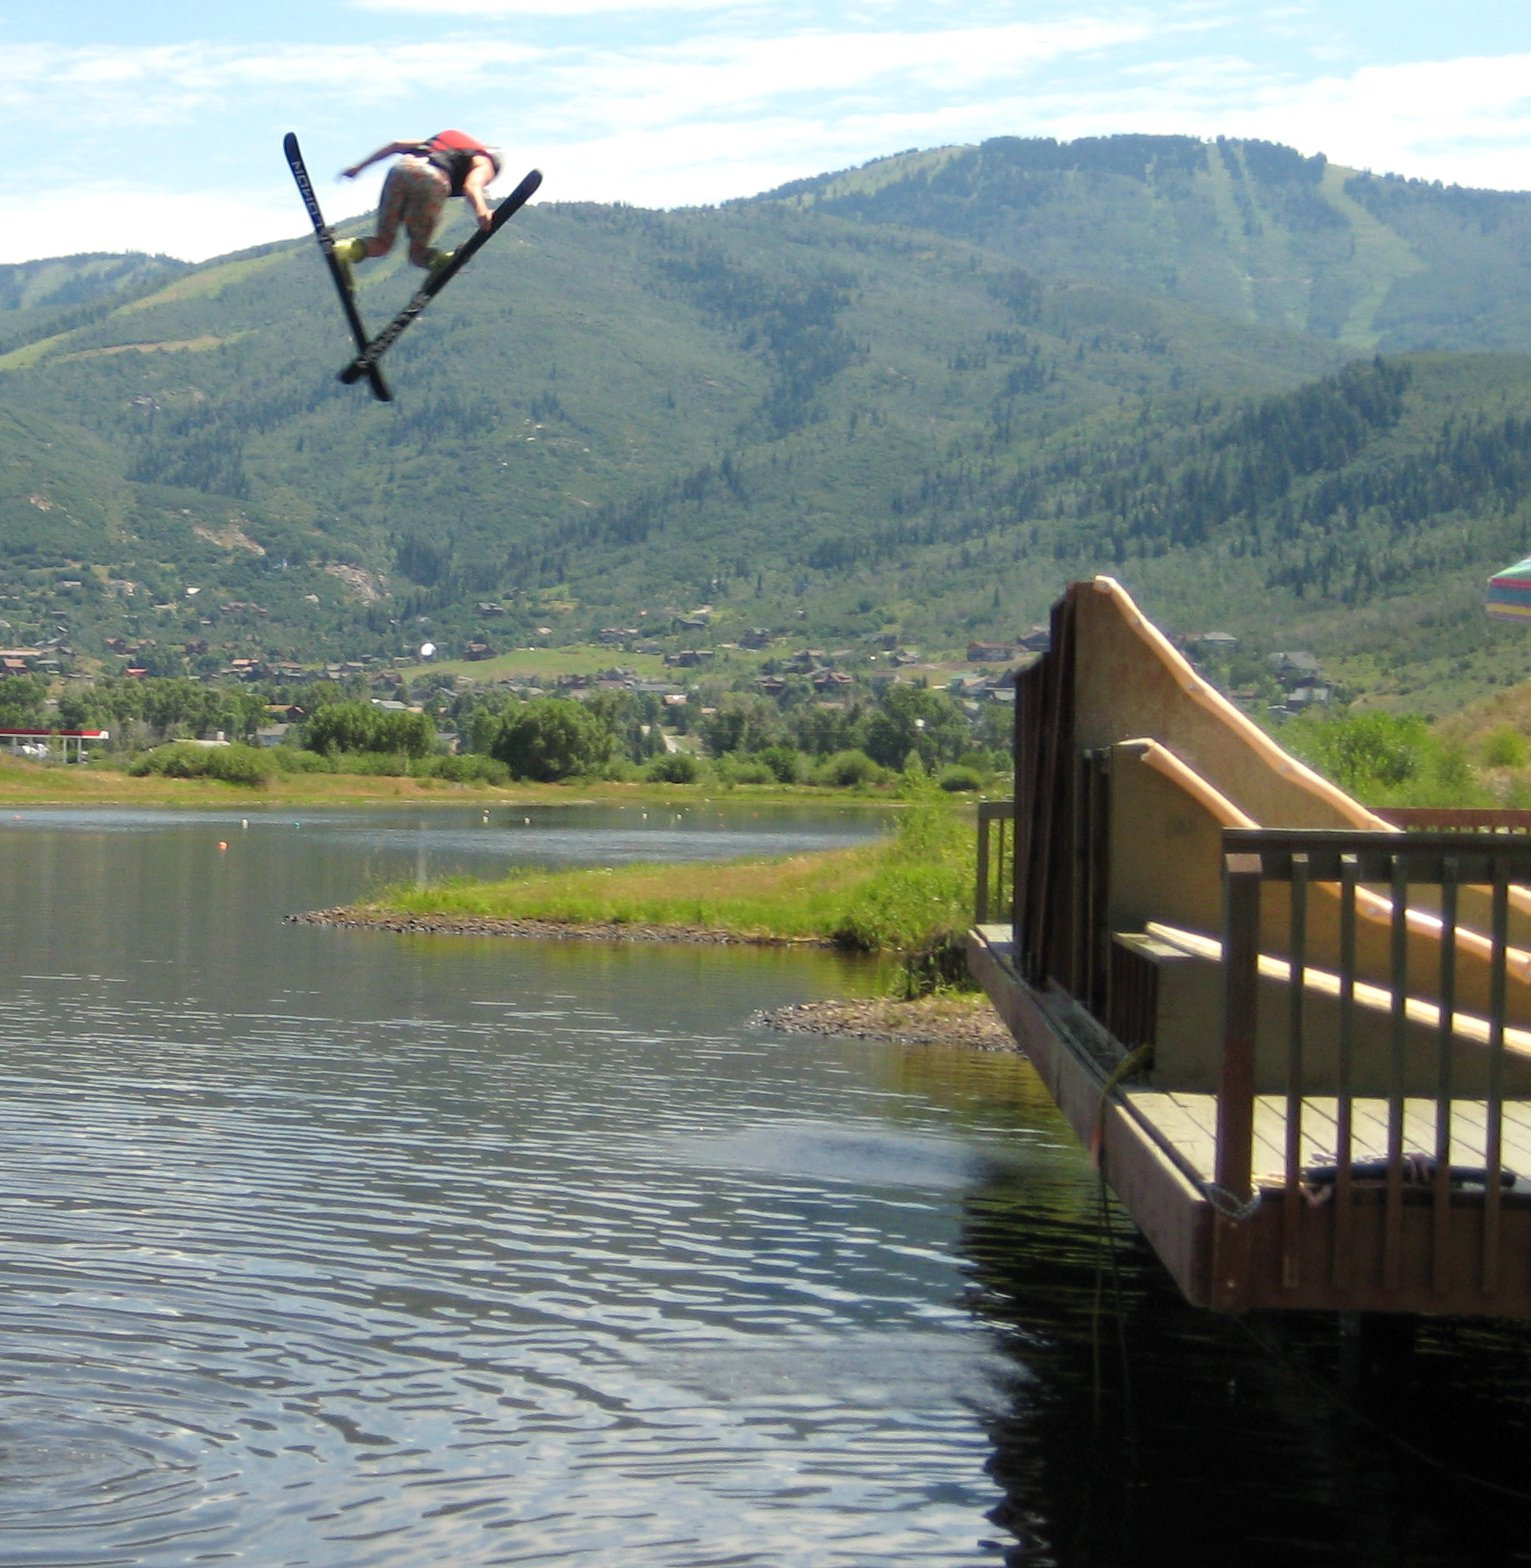 A day at the water ramps